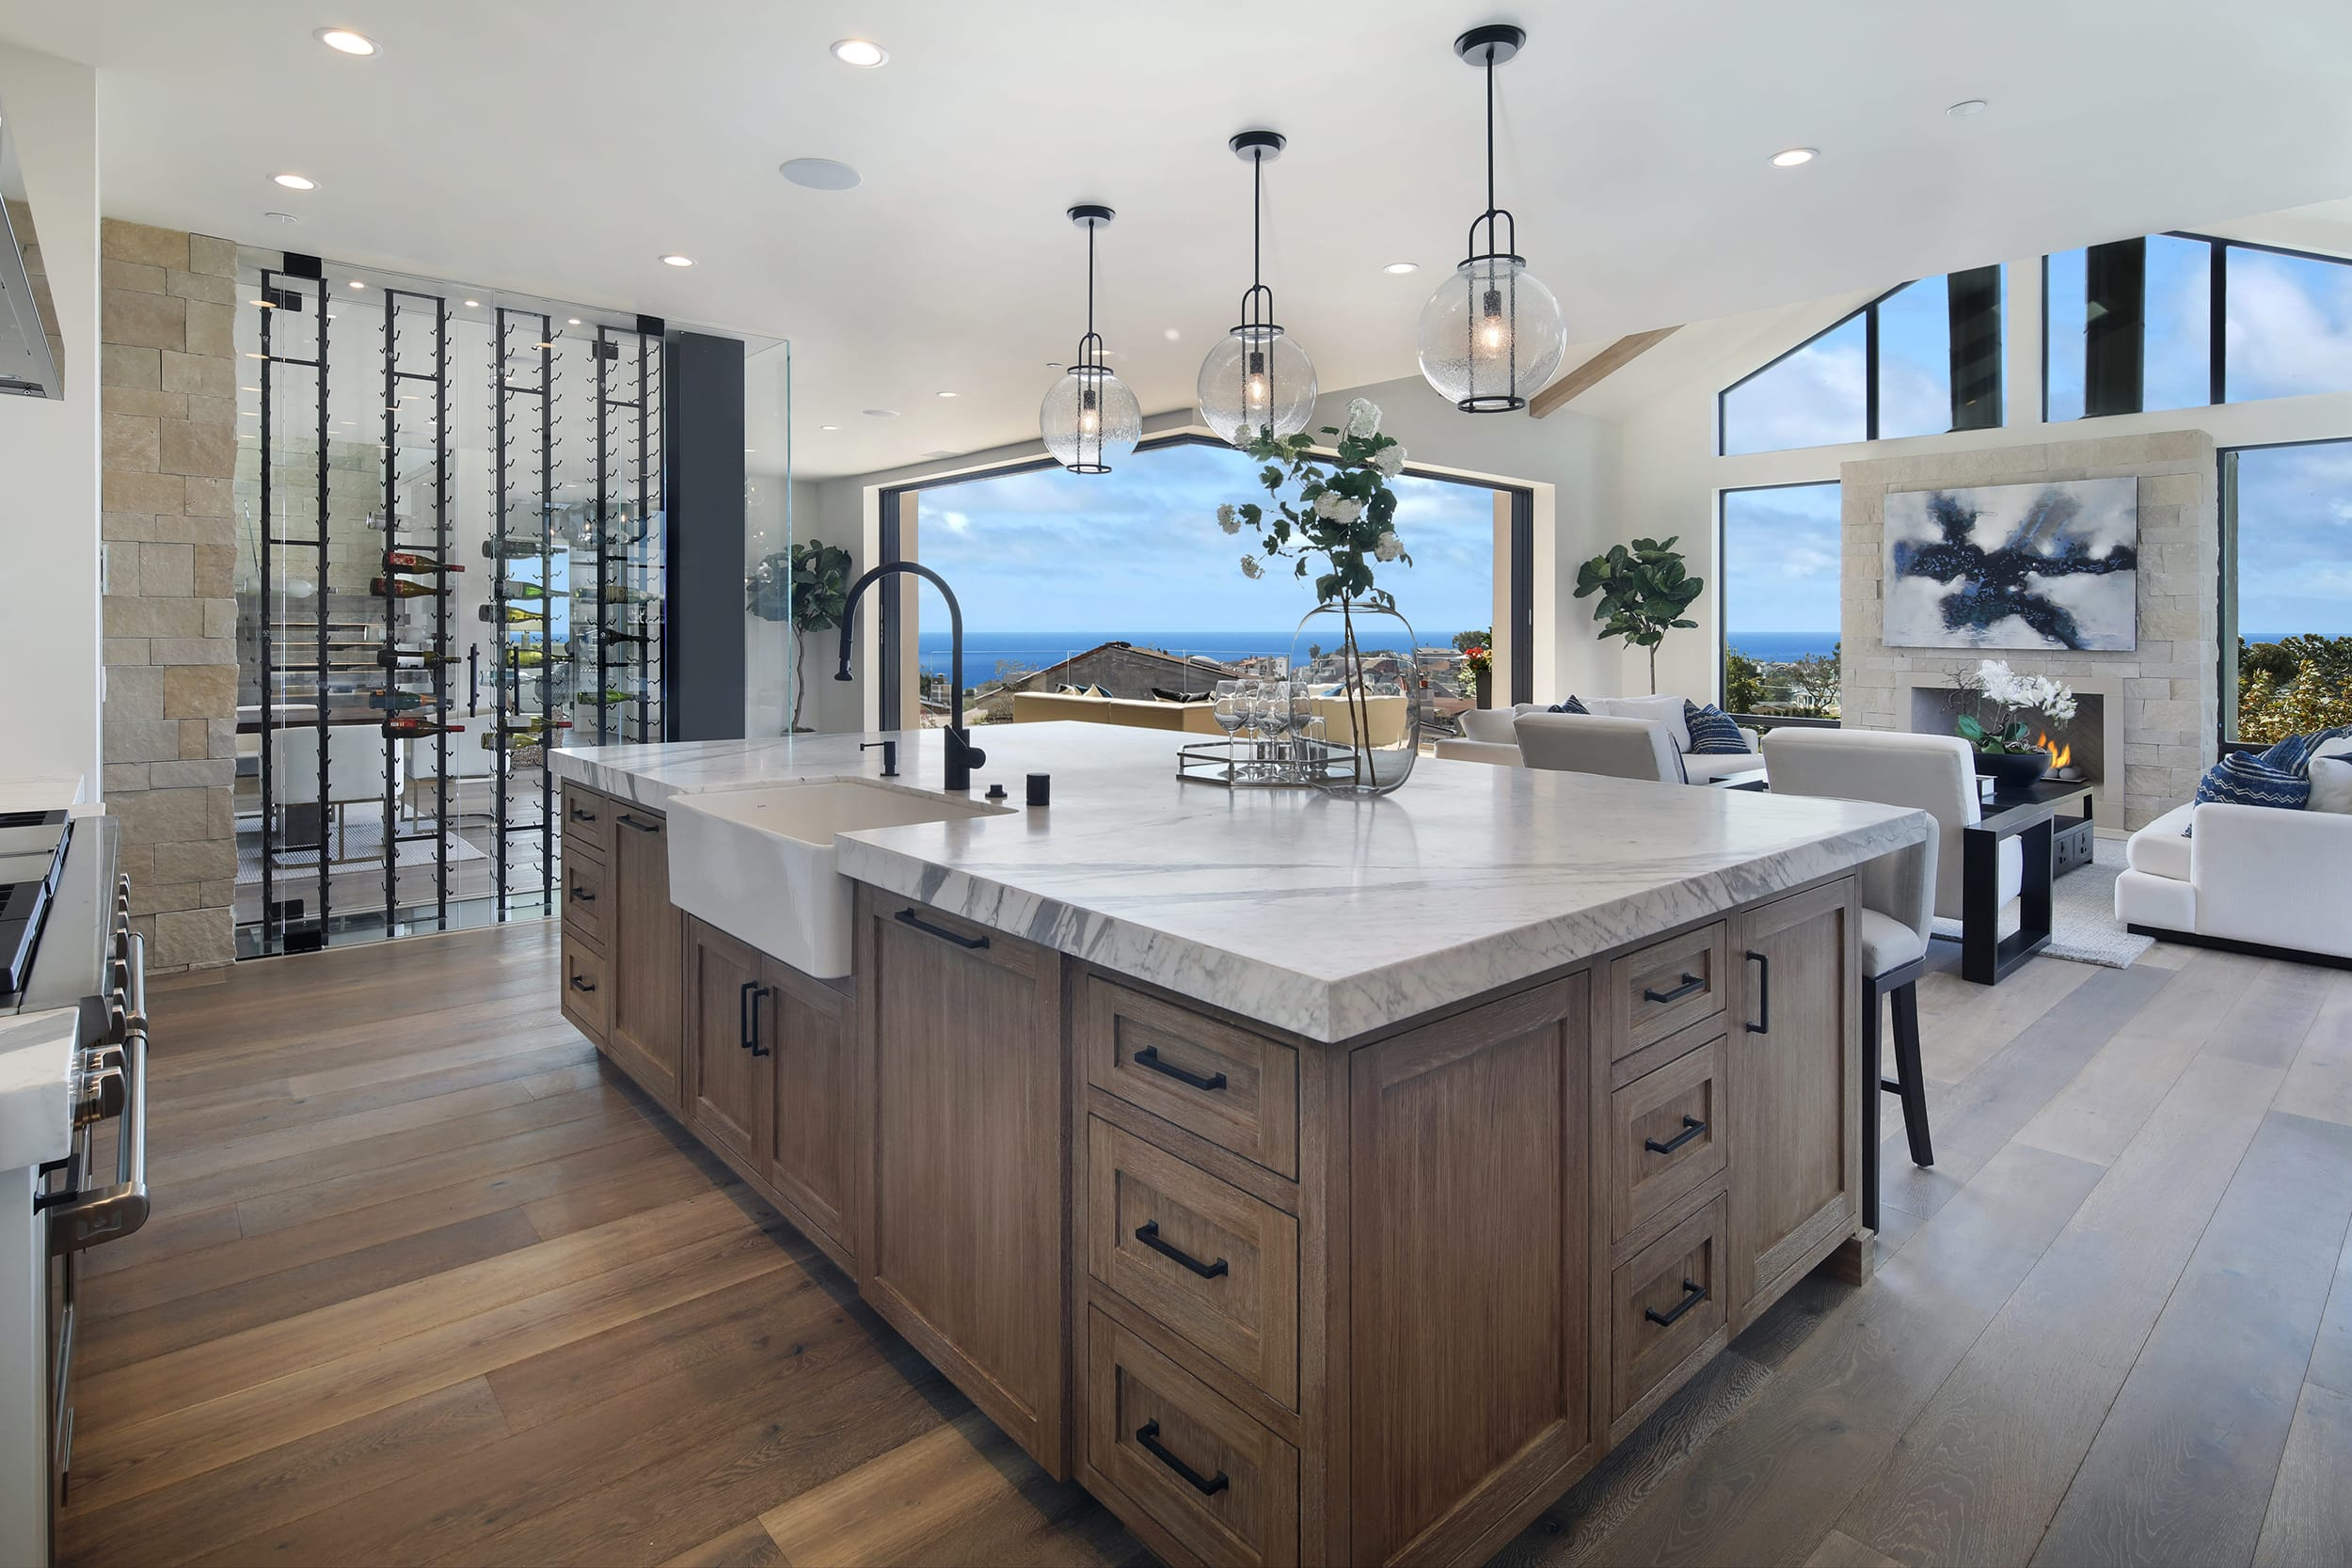 Top 2019 Kitchen Design Trends You Will Be Seeing Everywhere Firstteam